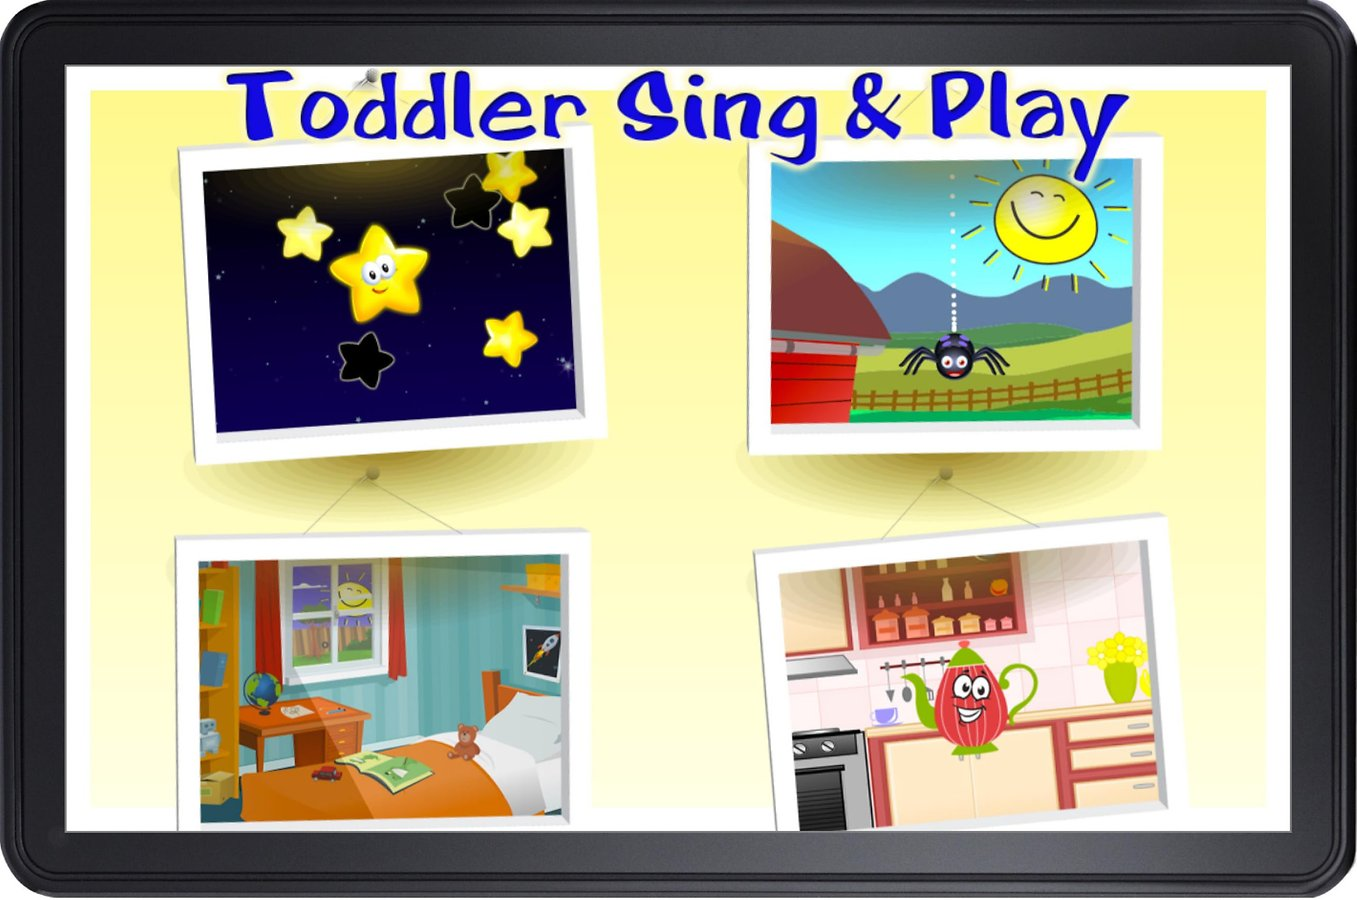 toddler-sing-and-play-a88ba5-h900